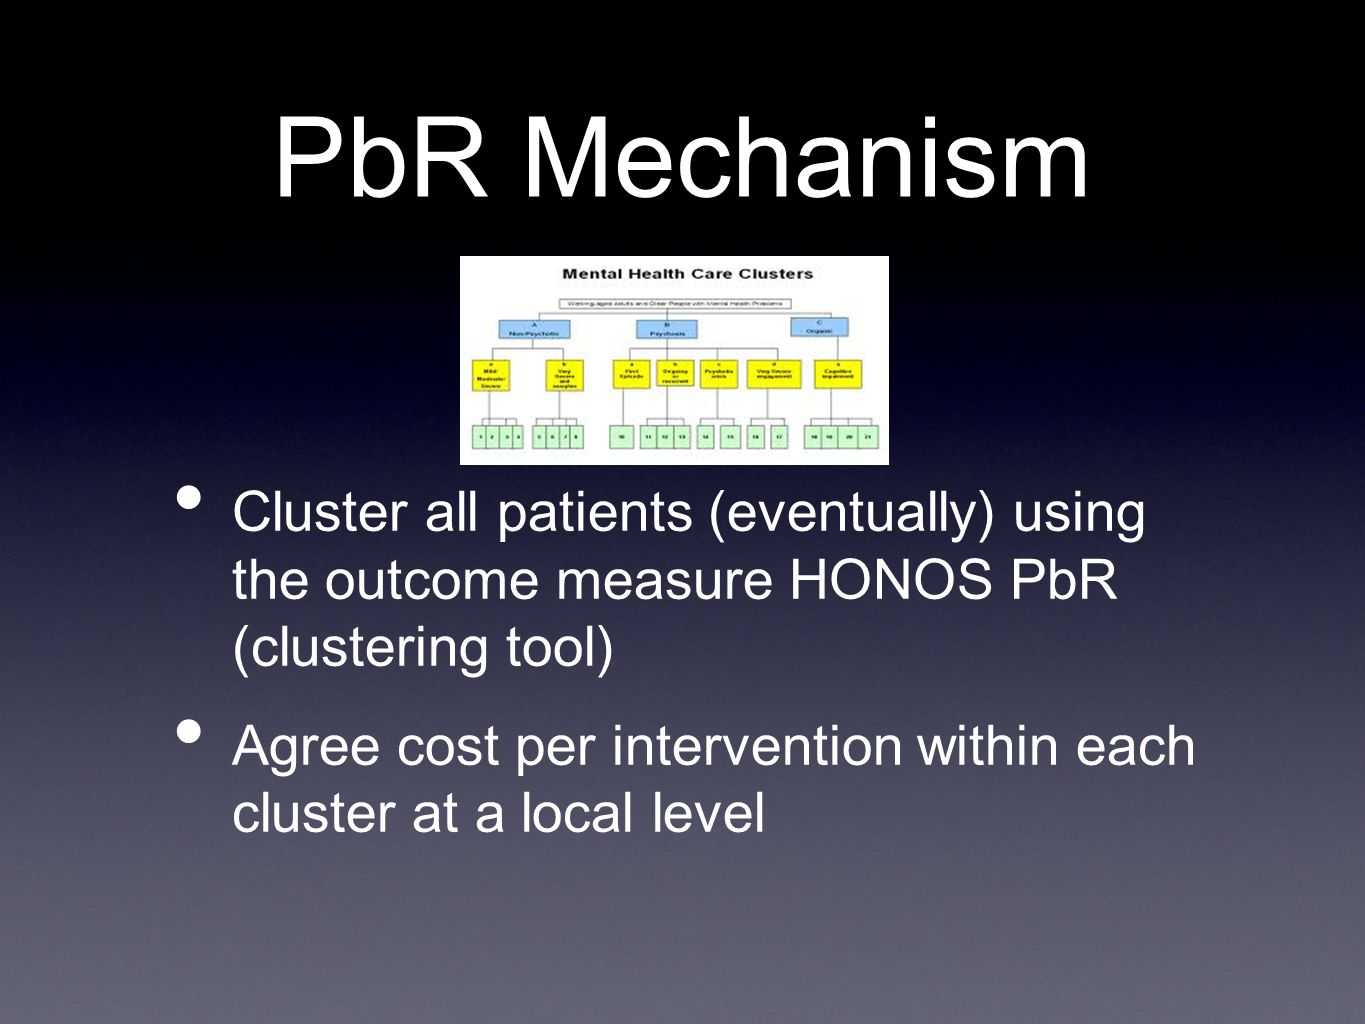 PbR Mechanism Cluster all patients (eventually) using the outcome measure HONOS PbR (clustering tool) Agree cost per intervention within each cluster at a local level